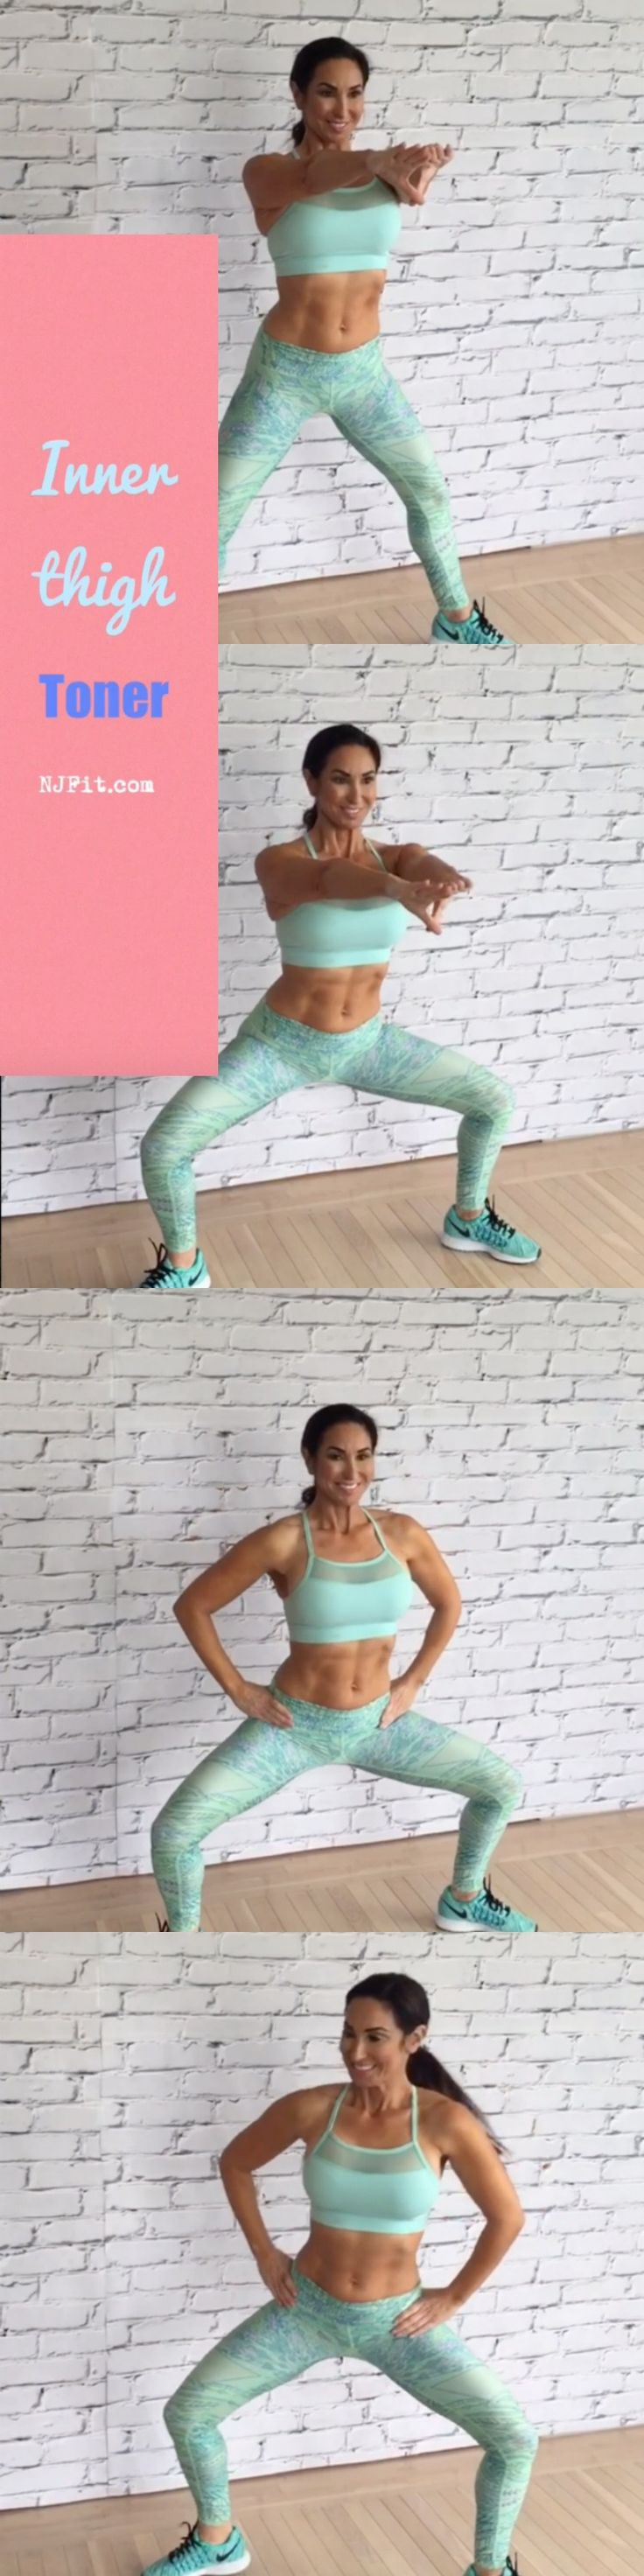 Time to work those inner thighs with this inner thigh toner! pliée squats (60 seconds) pliée squat pulses (60 seconds) pliée squat walks (60 seconds) Are you IN?! Click the image to follow the workout video.